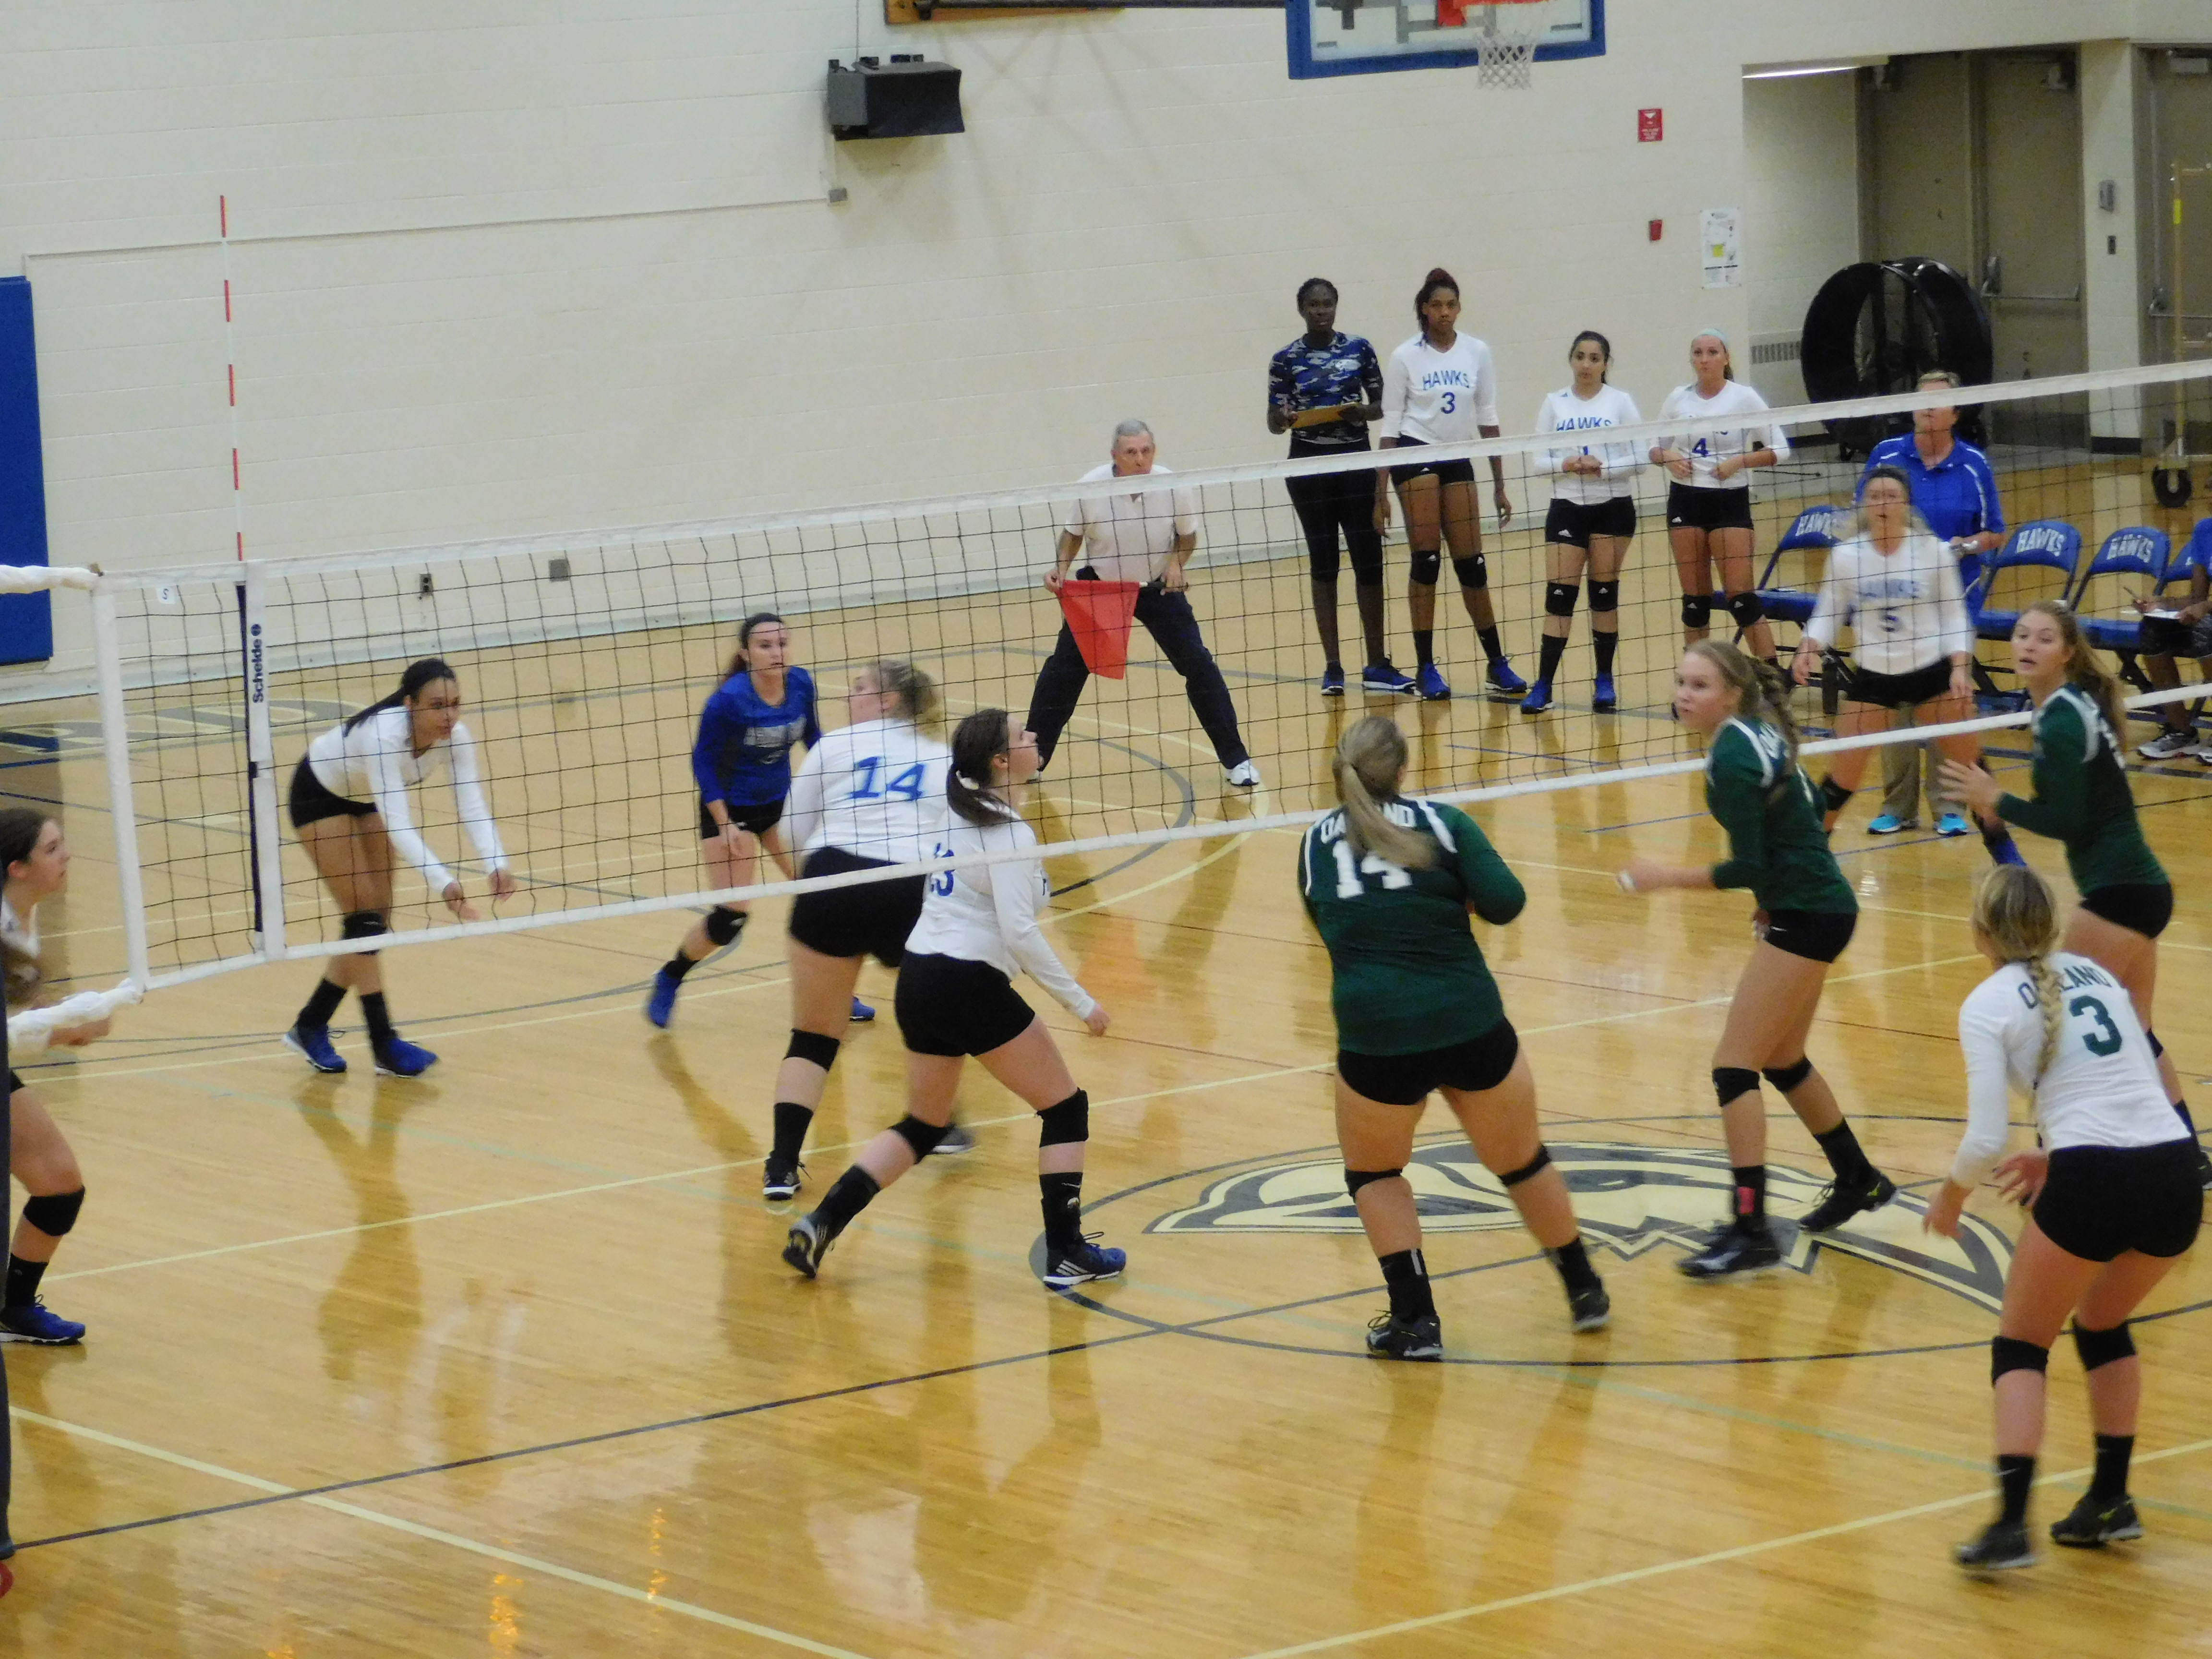 Hawks girls volleyball team scrambling to get the ball.